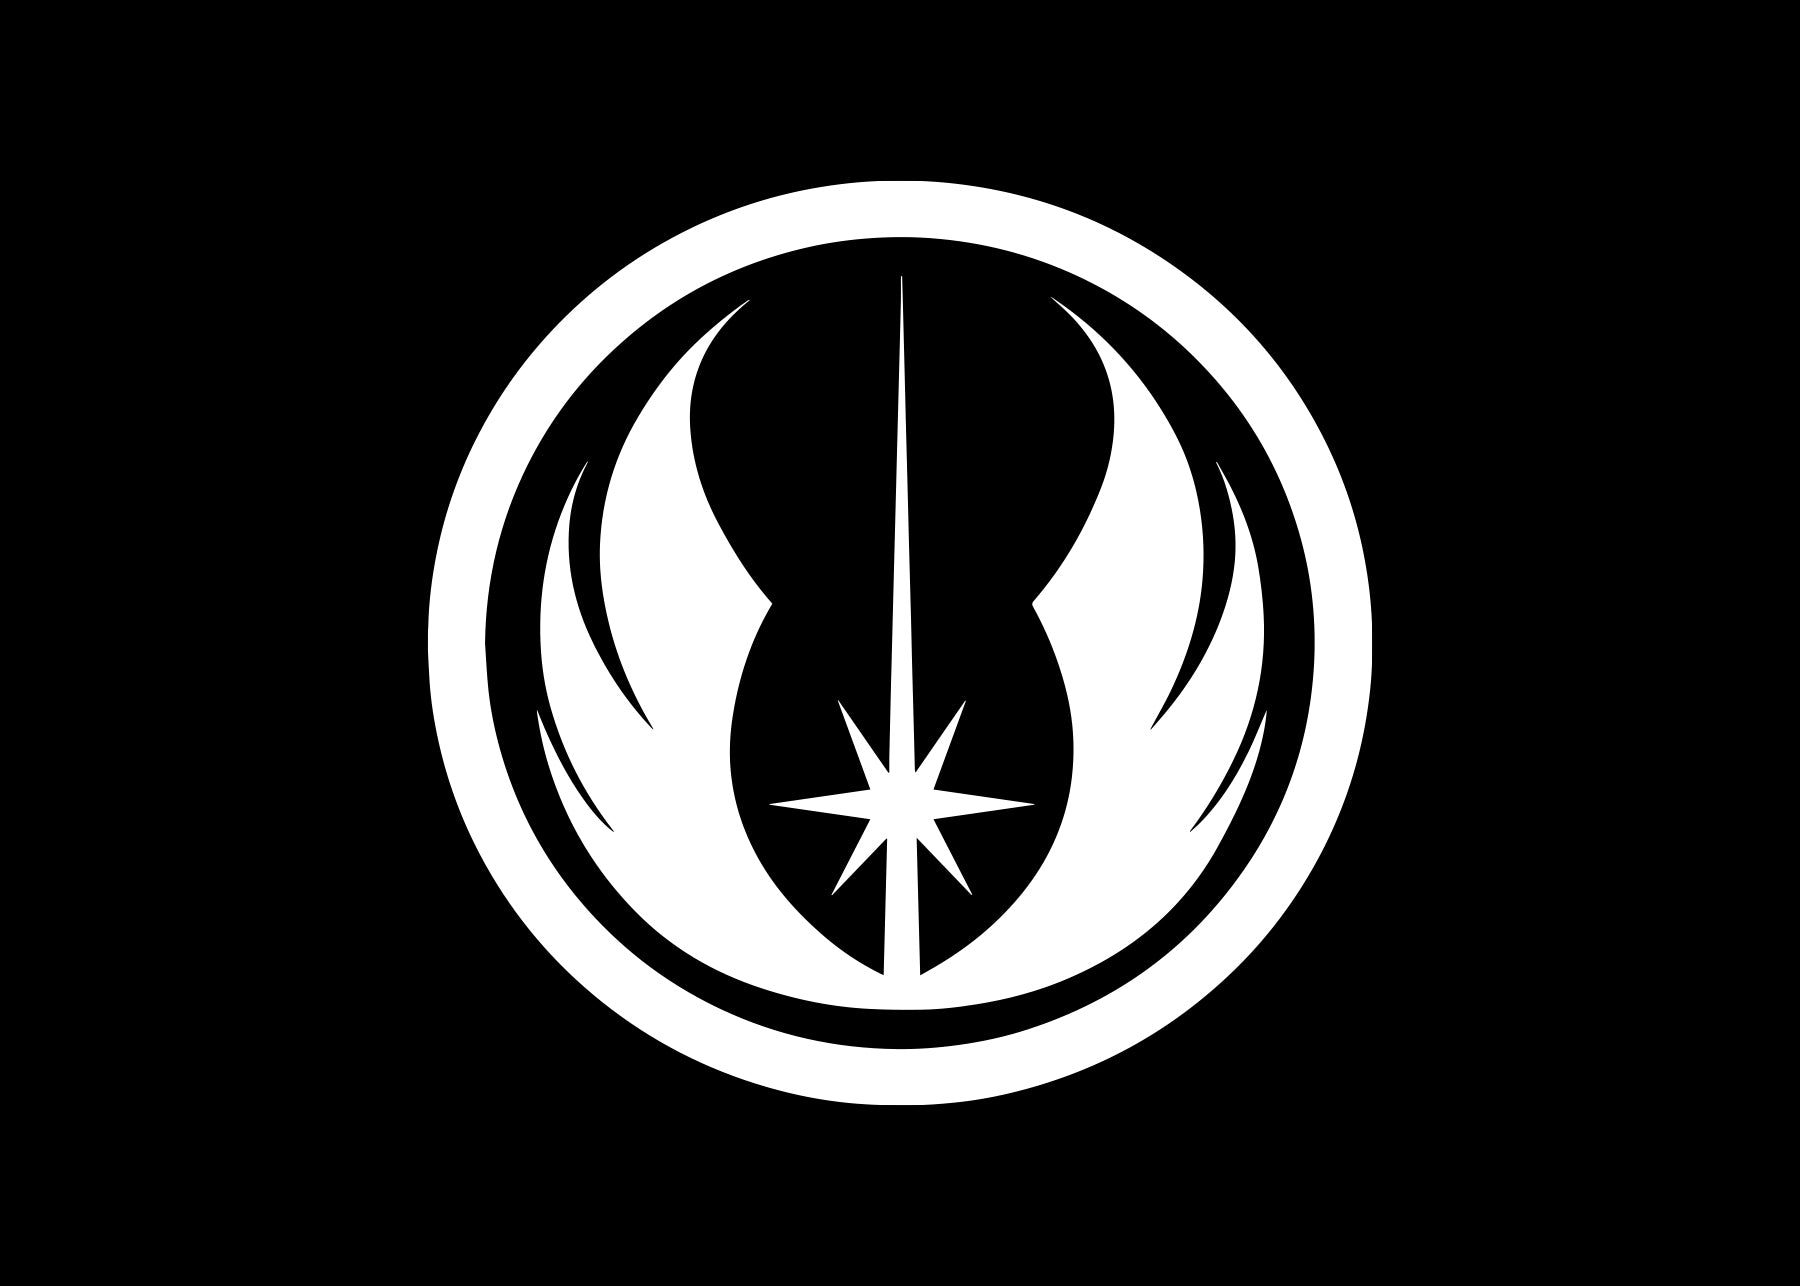 Jedi Order Star Wars Car Decal Sticker The Decal God - Star wars car decals